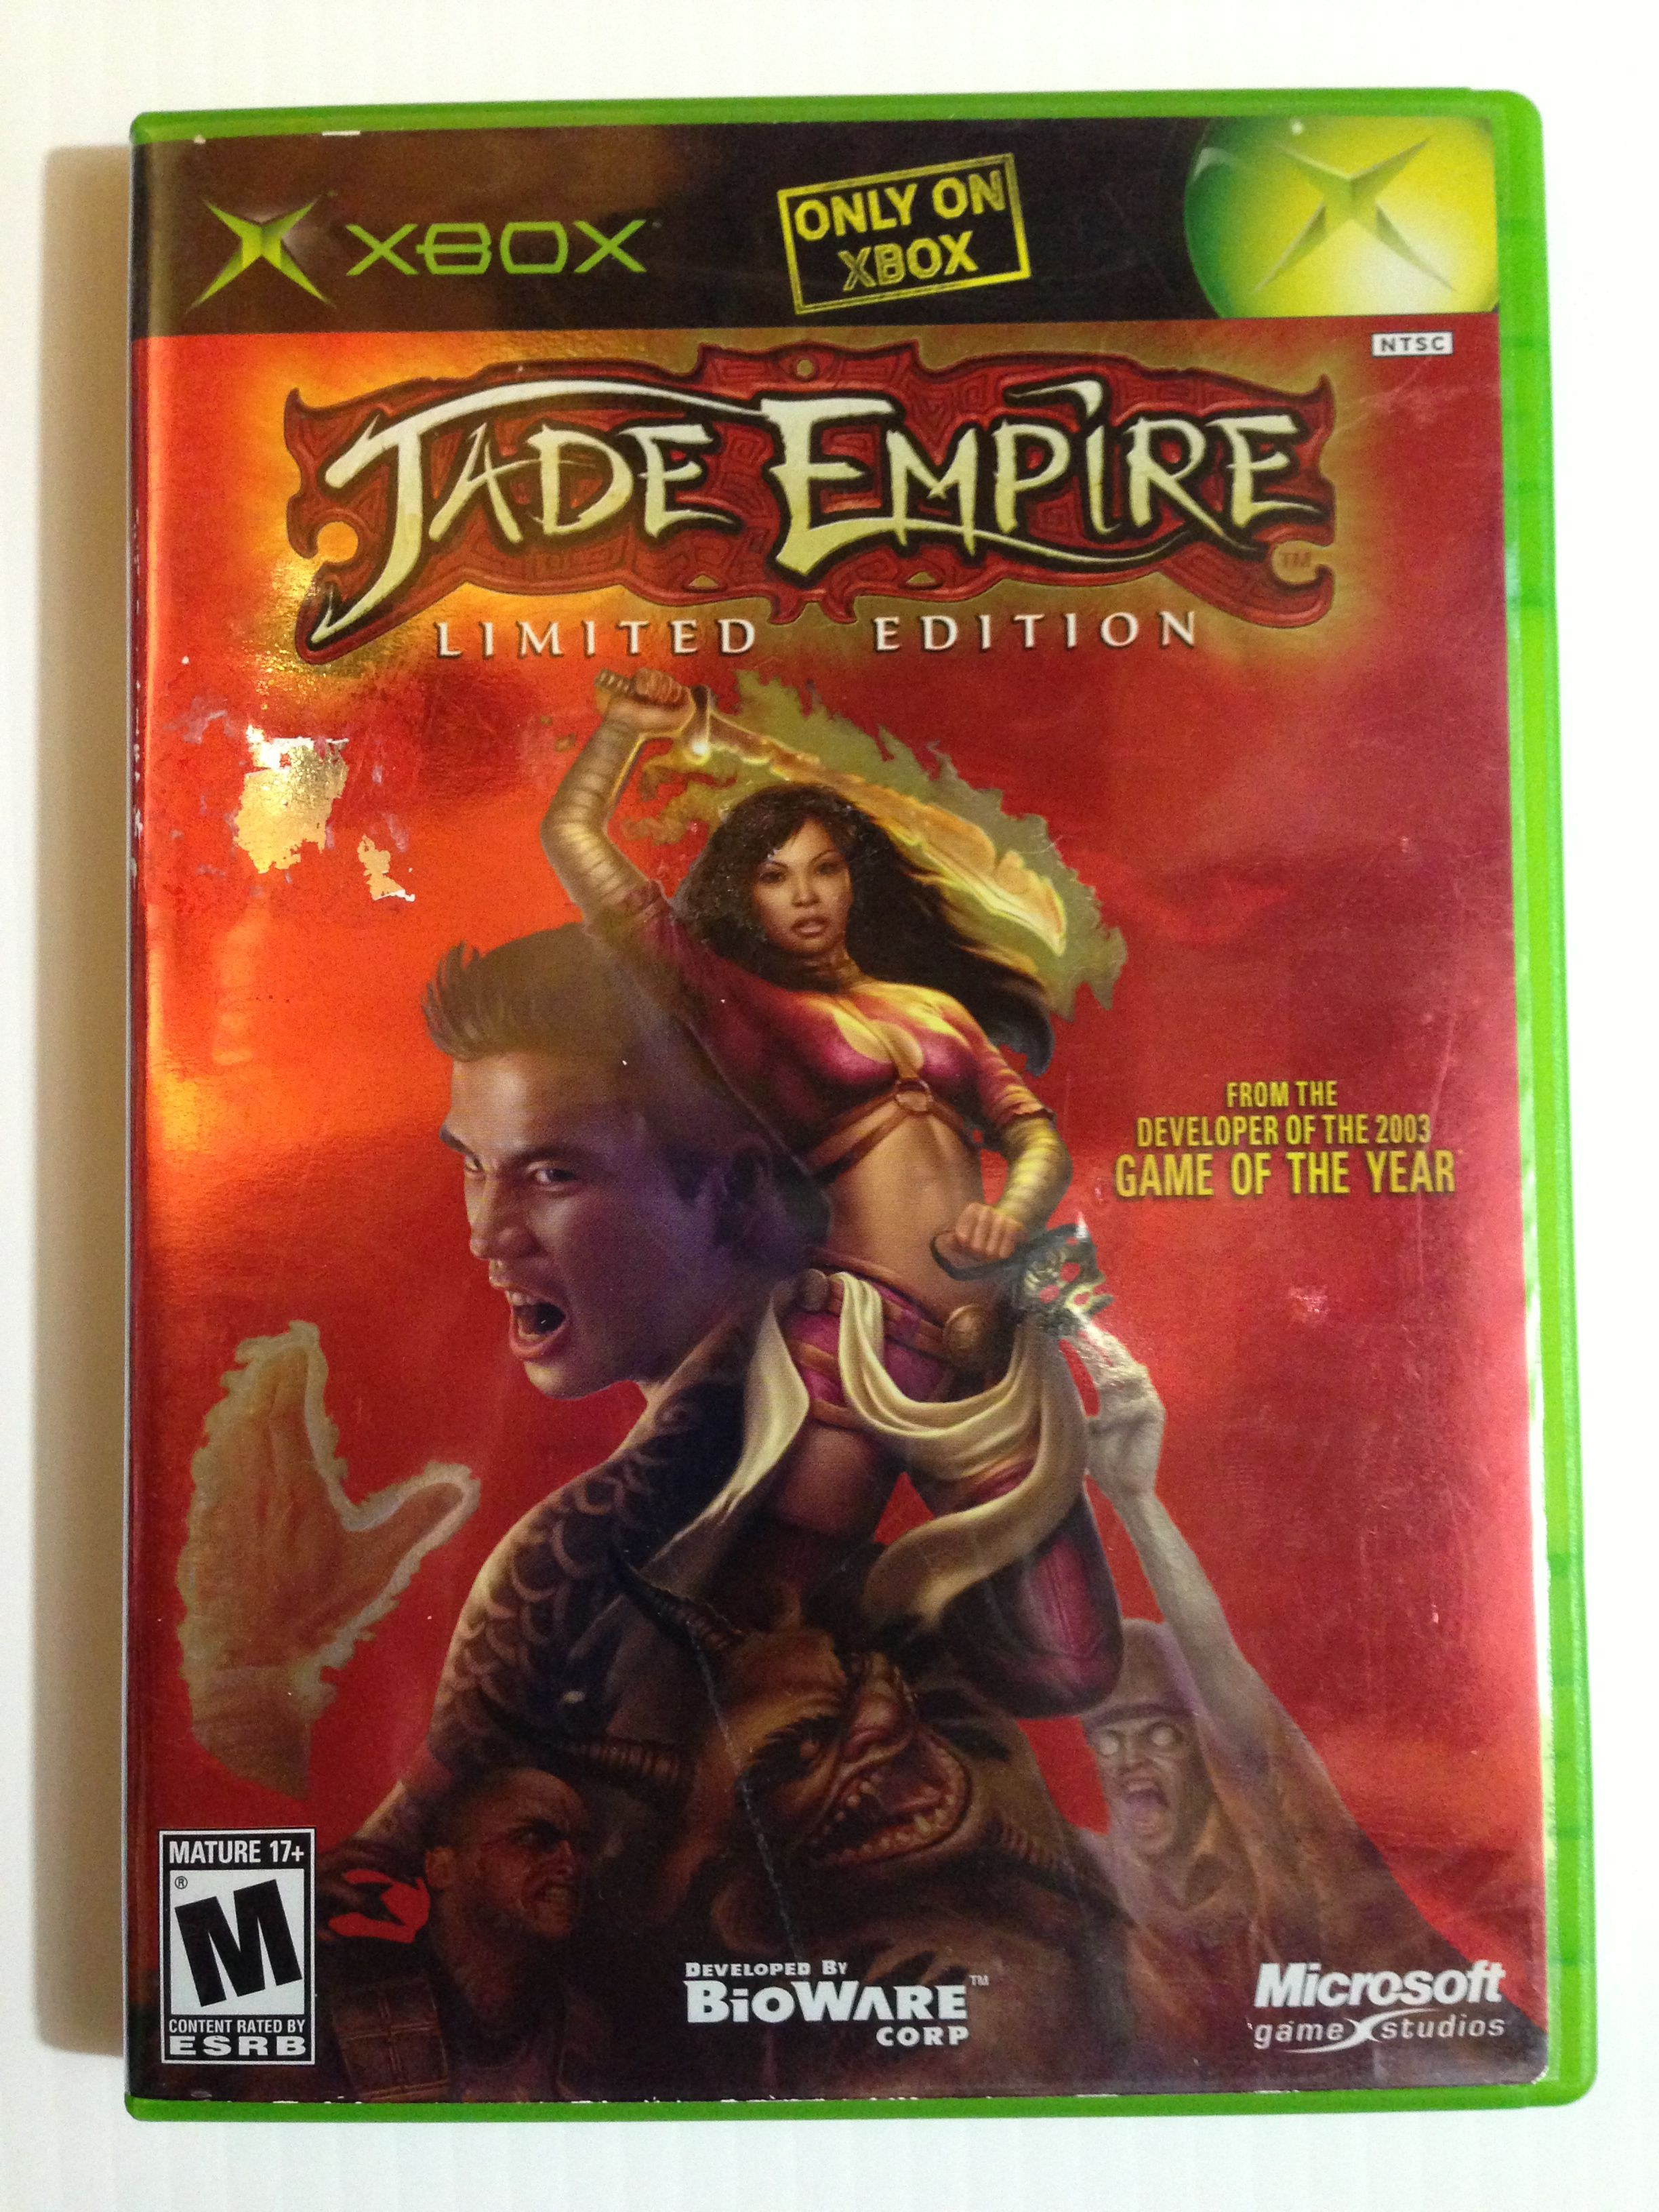 Jade Empire Limited Edition My Favorite Original Xbox Game Of All